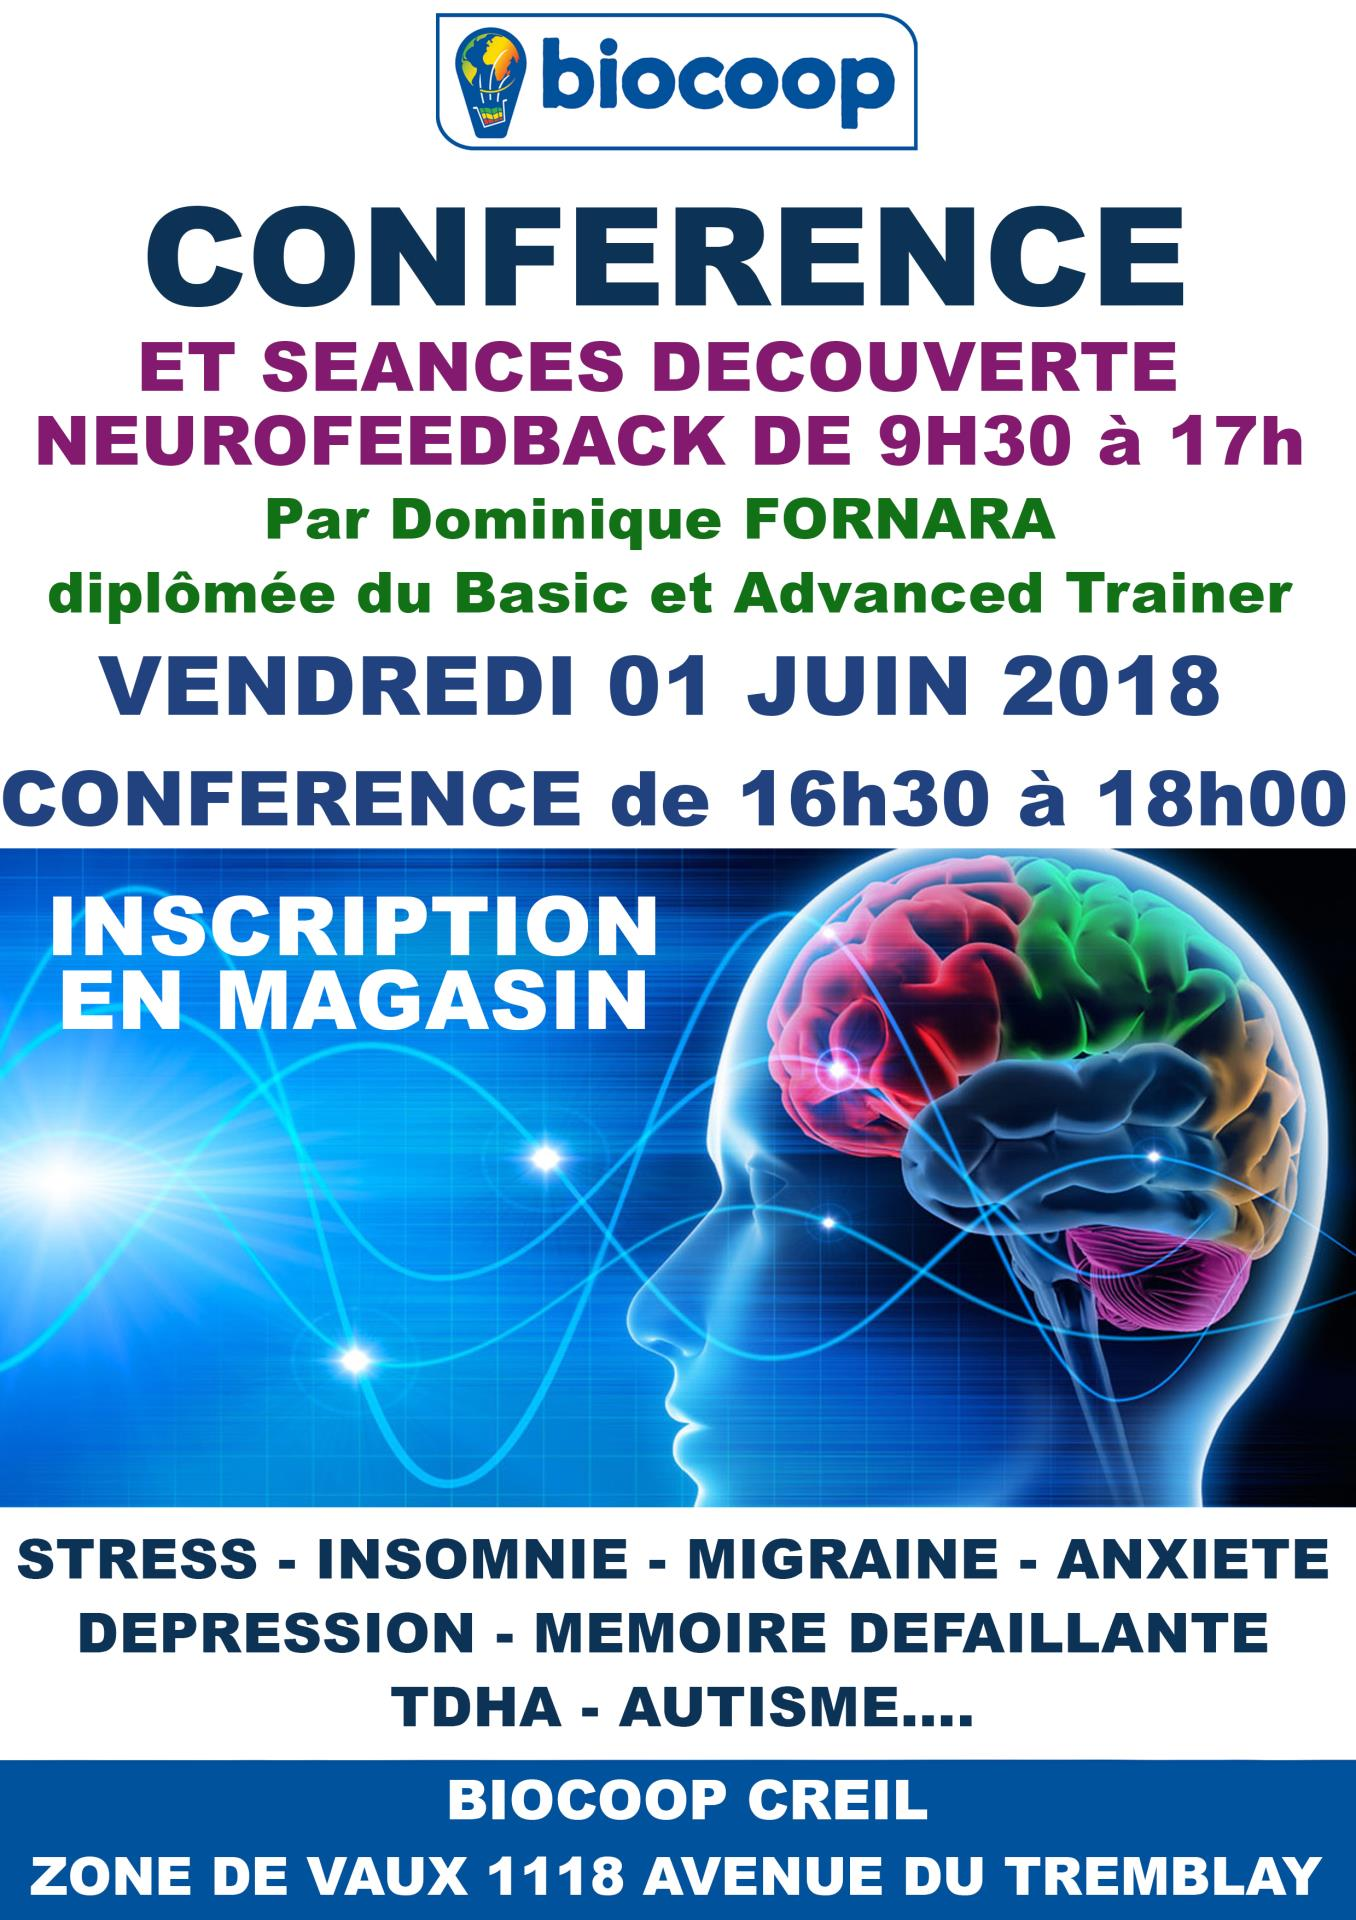 CONFERENCE NEUROFEEDBACK VILLAGE EXPO 01 ET 02 JUIN 2018